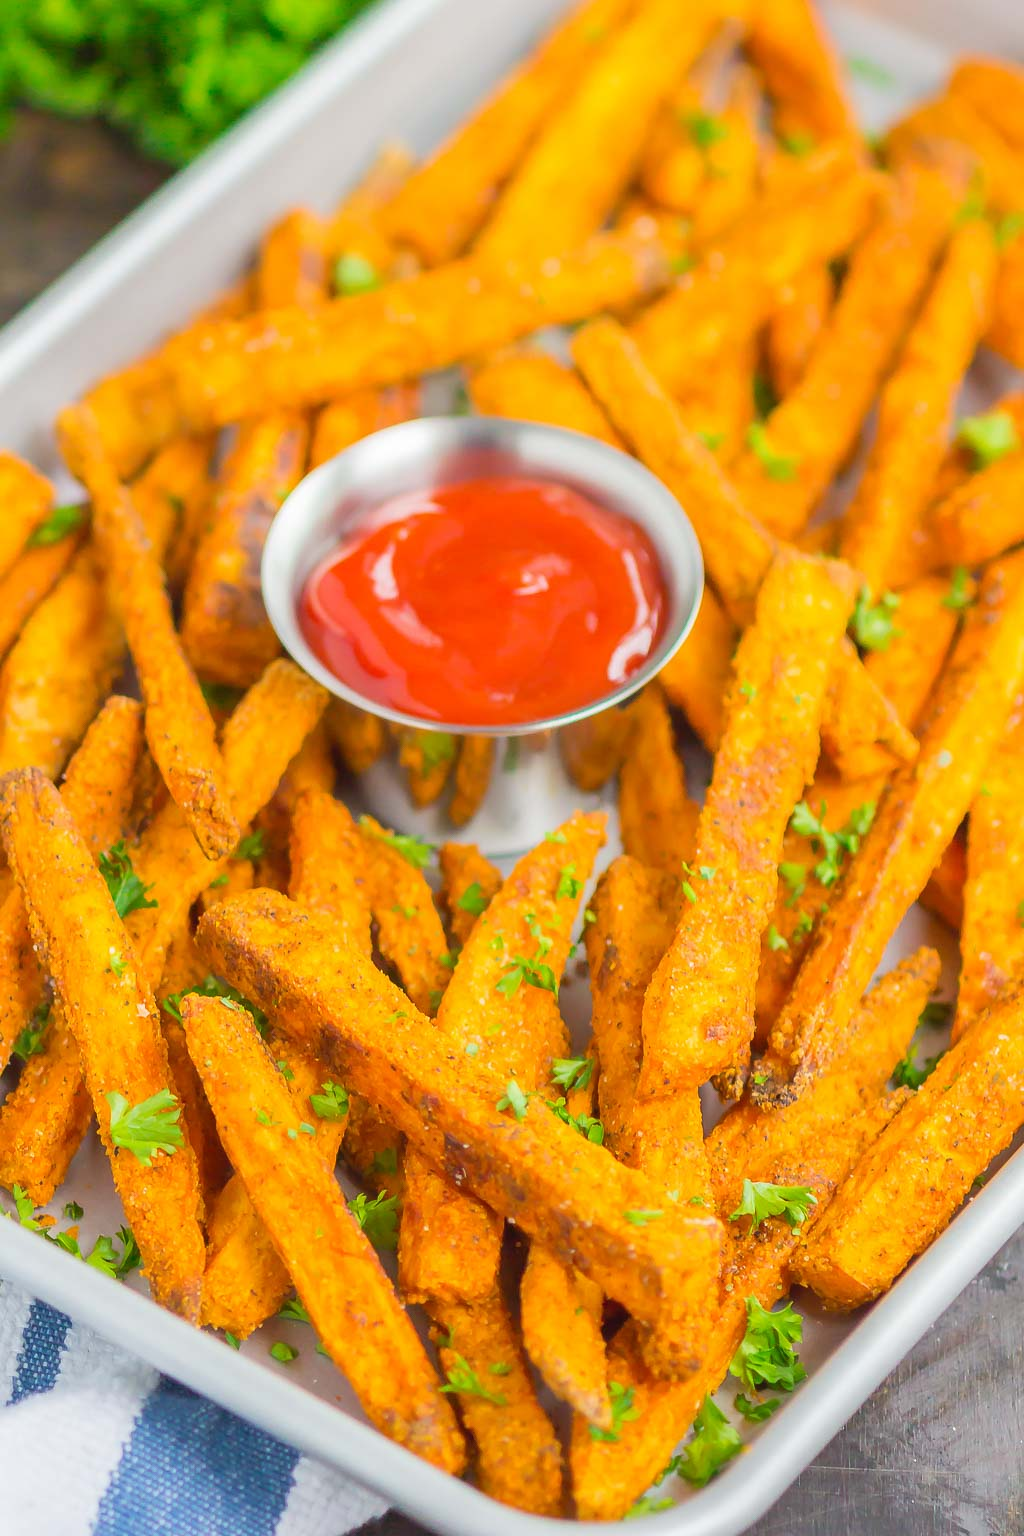 Crispy Baked Sweet Potato Fries are easy to make and seasoned to perfection. Healthier than the fried version and so delicious, thesecrunchy fries are perfect for a simple snack or side dish!